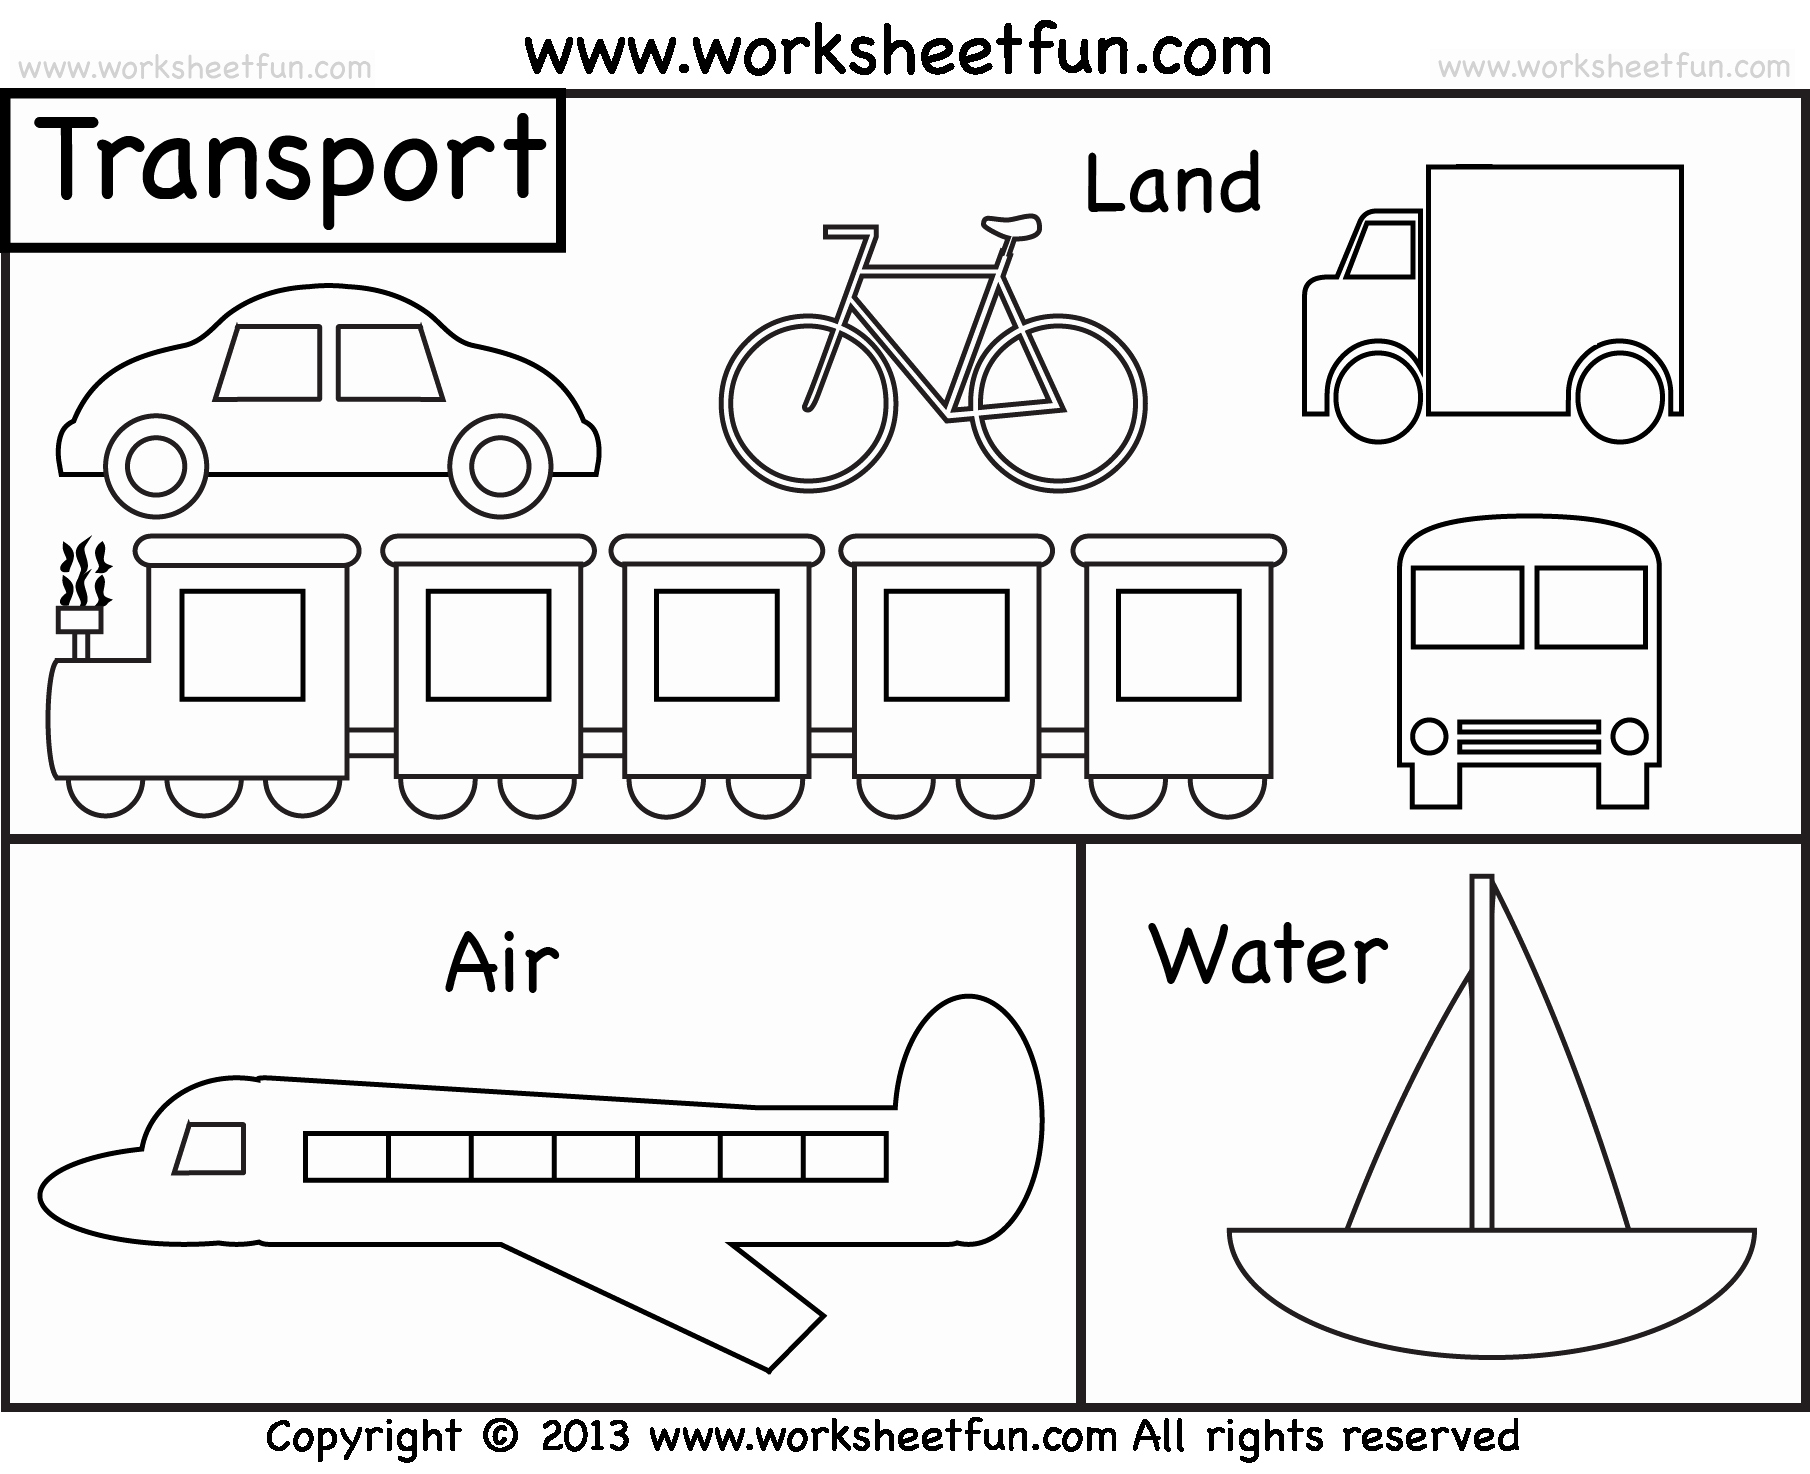 Live Com Sign In Page New Fascinating Transportation Coloring Sheets Means